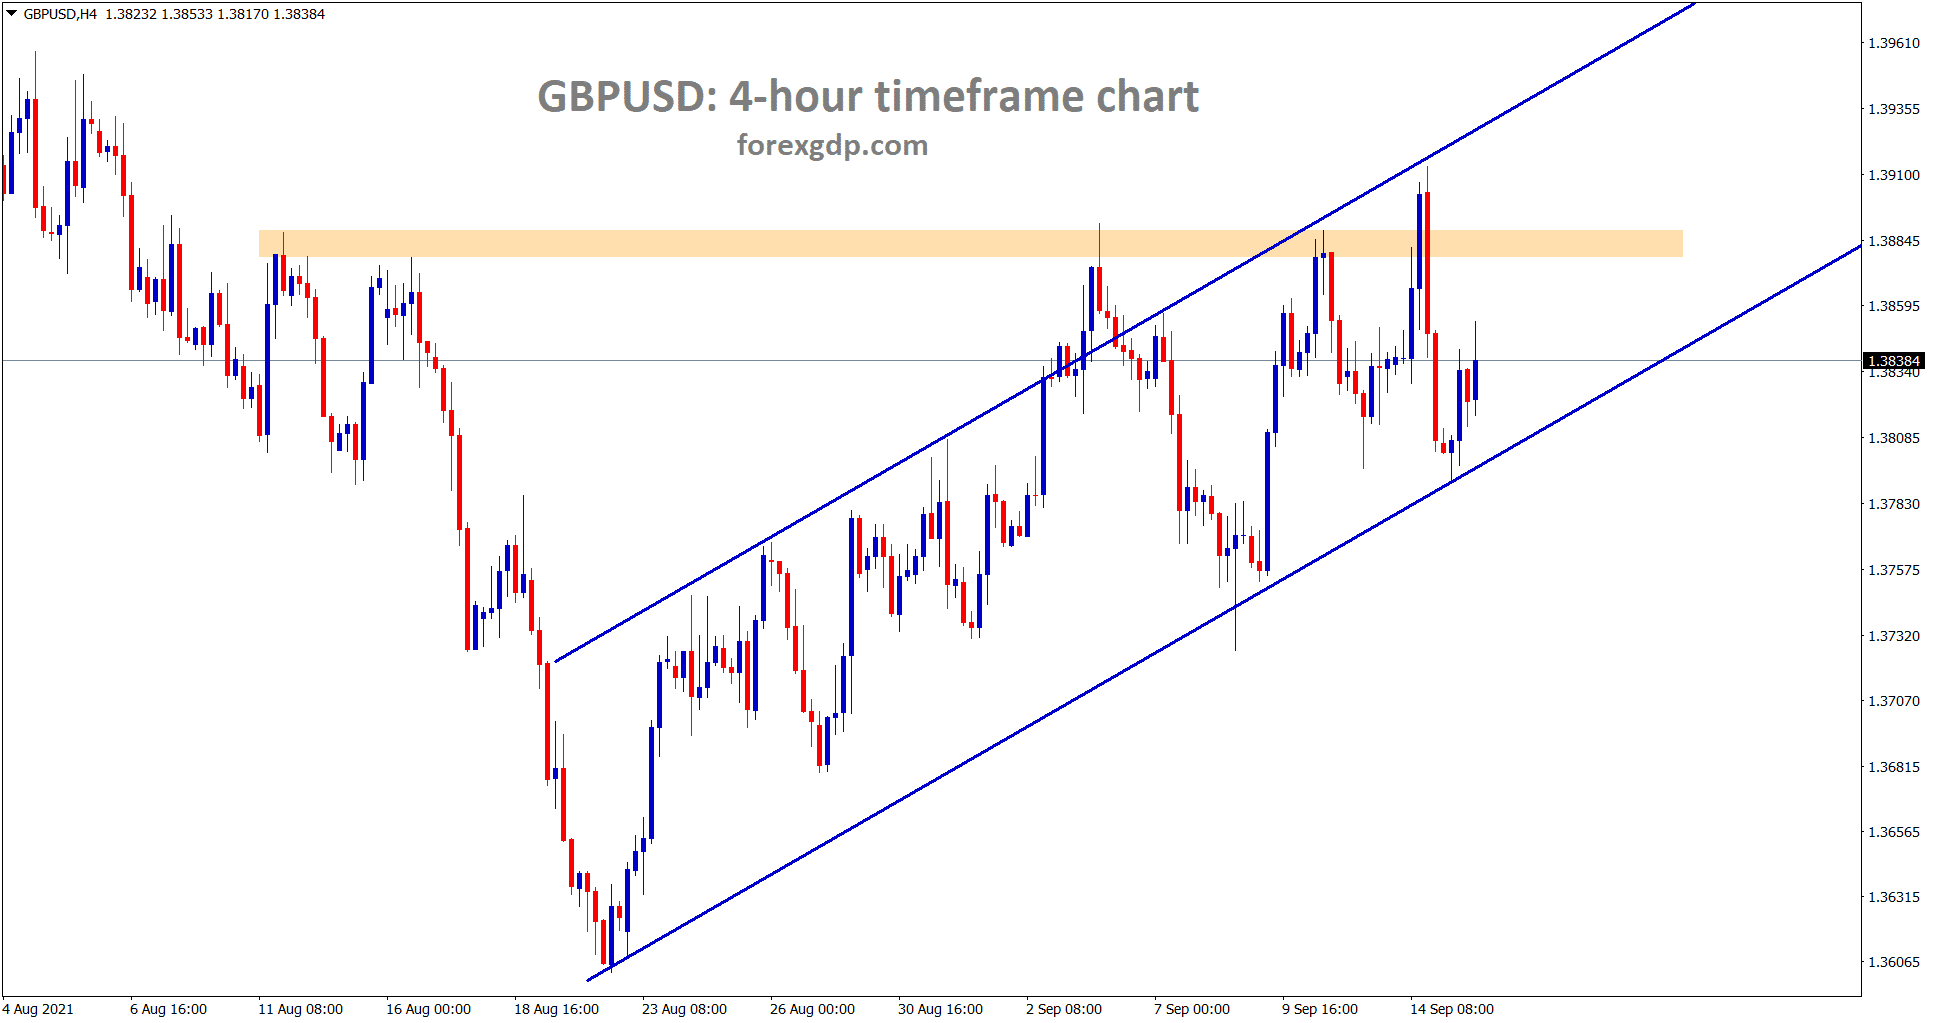 GBPUSD is moving in an Ascending channel range